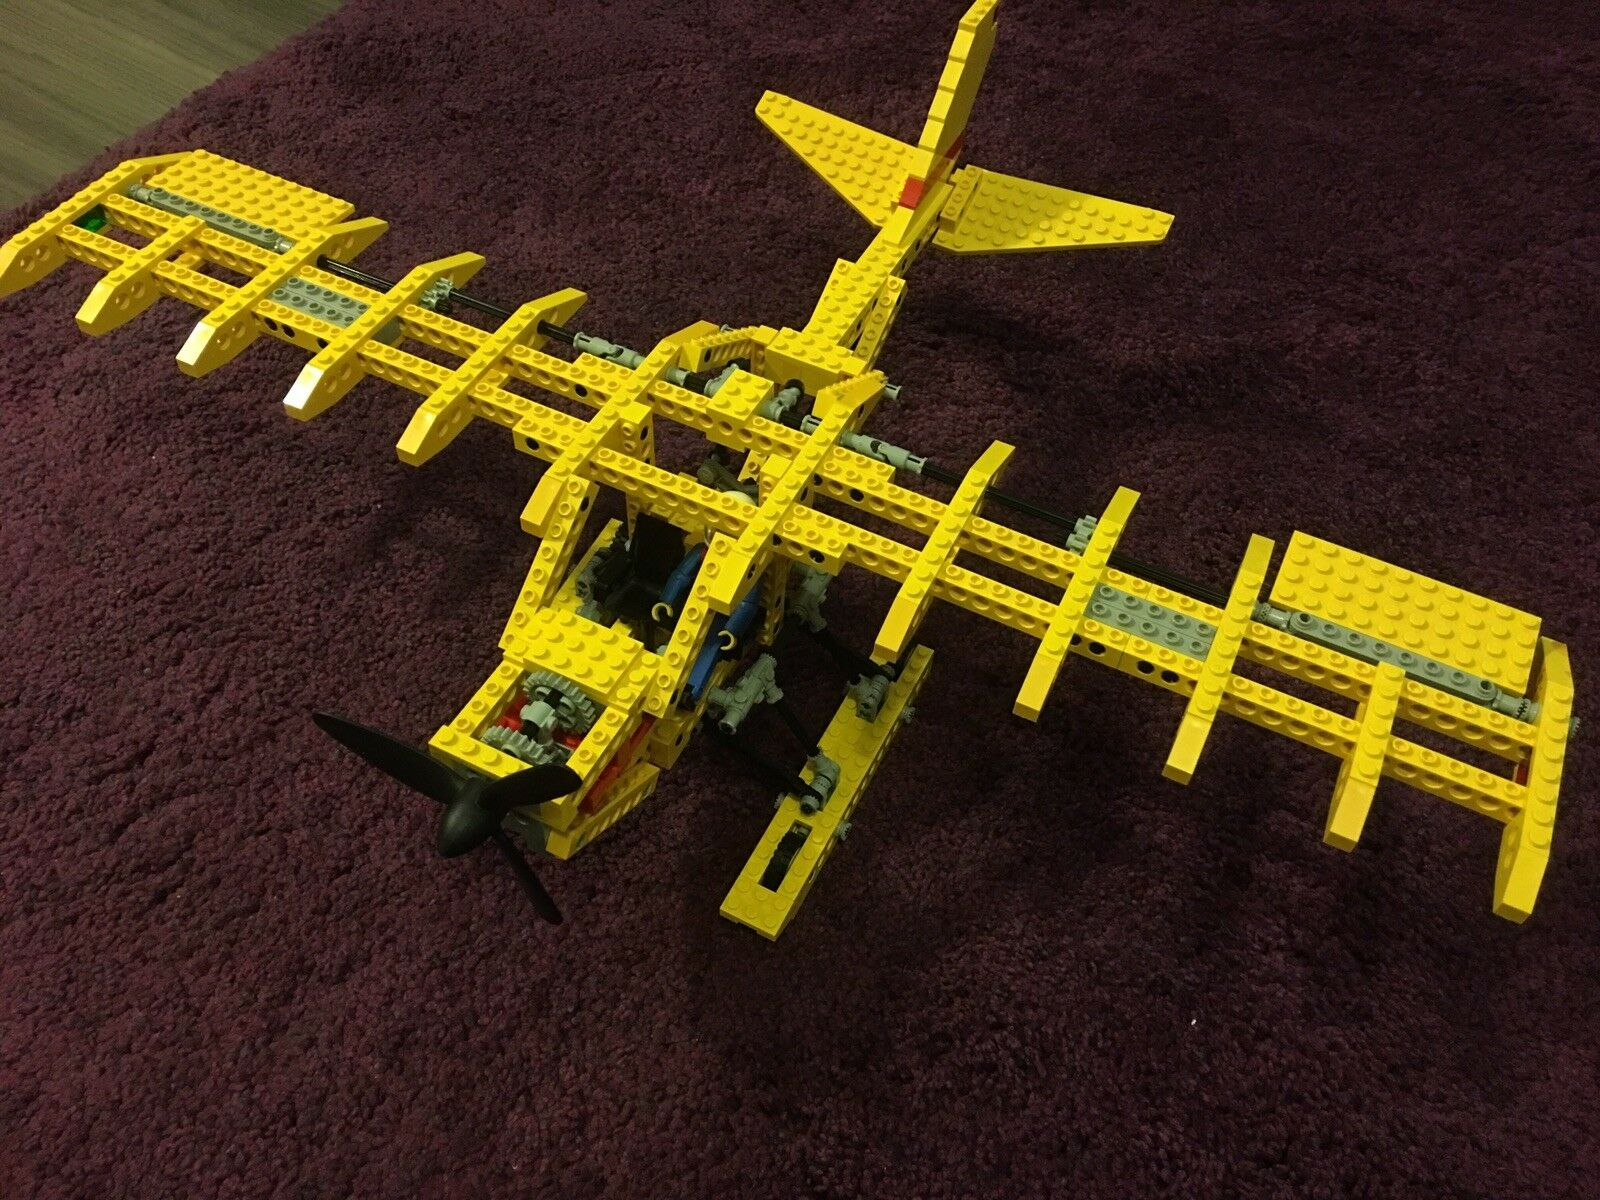 Vintage Lego Technic 8855 Prop Plane - 100% Complete With Box And Instructions